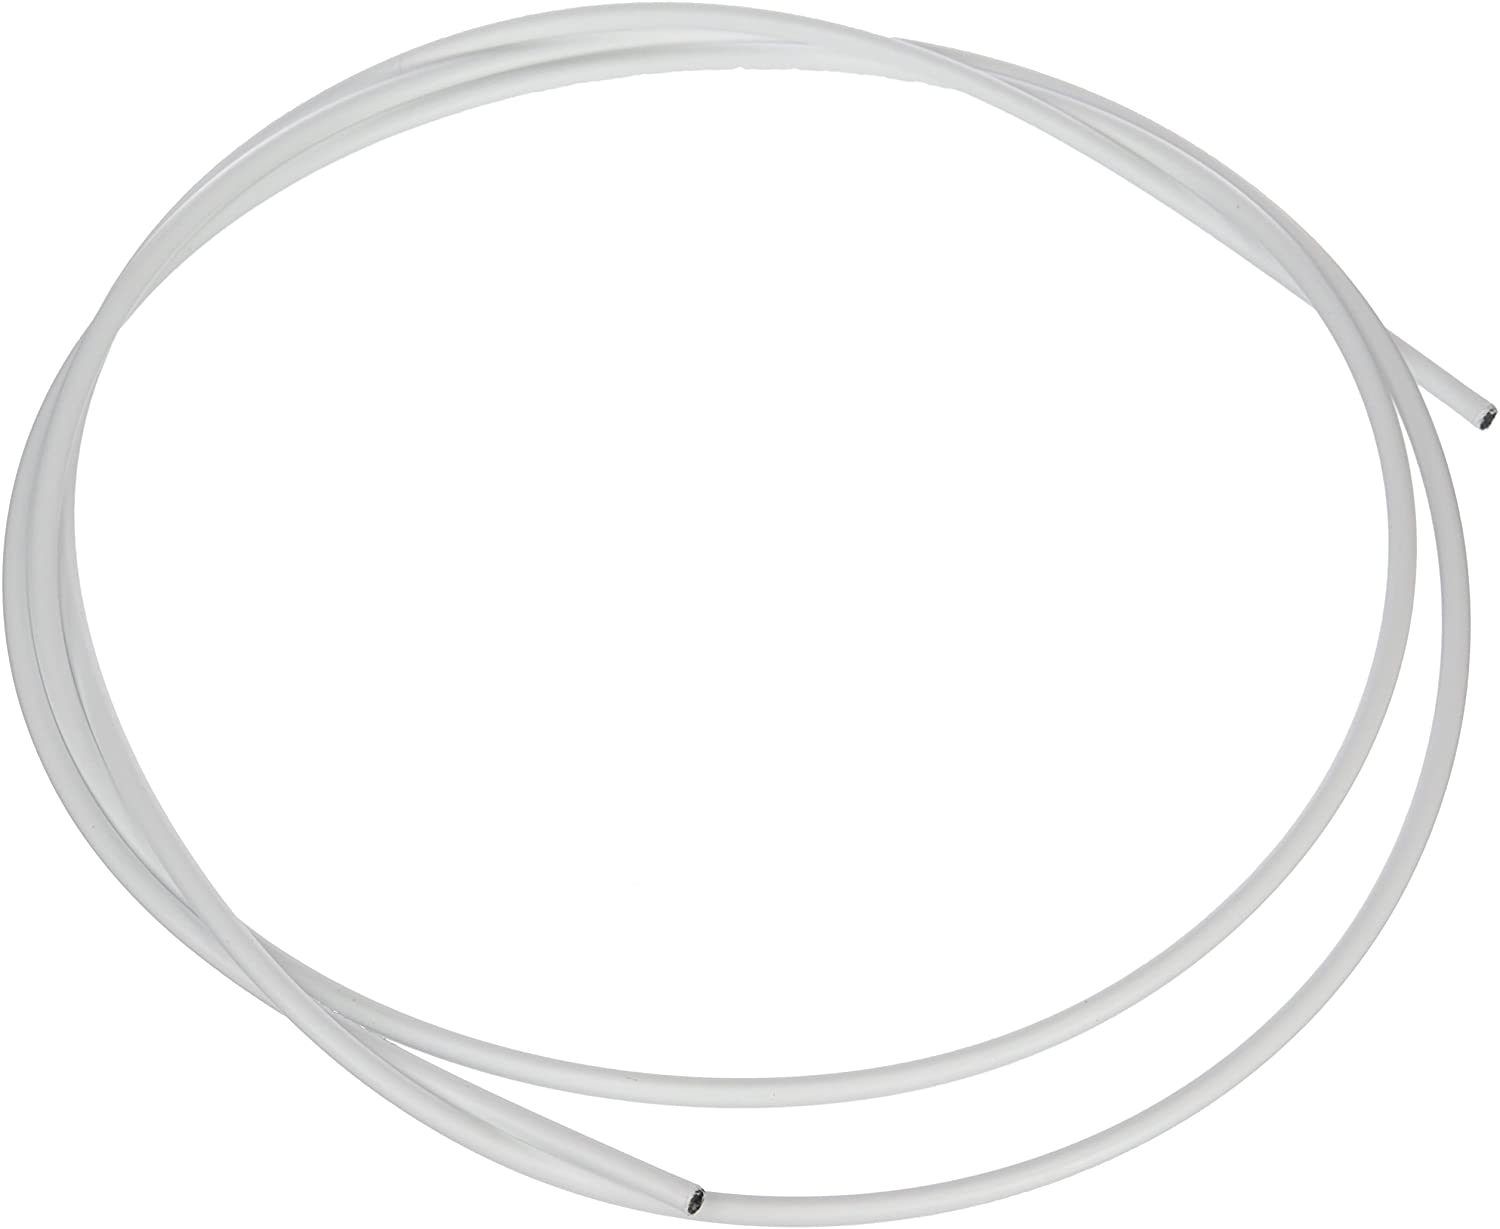 Shimano St-6800 Ultegra Shift Cable Set White Polymer-Coated